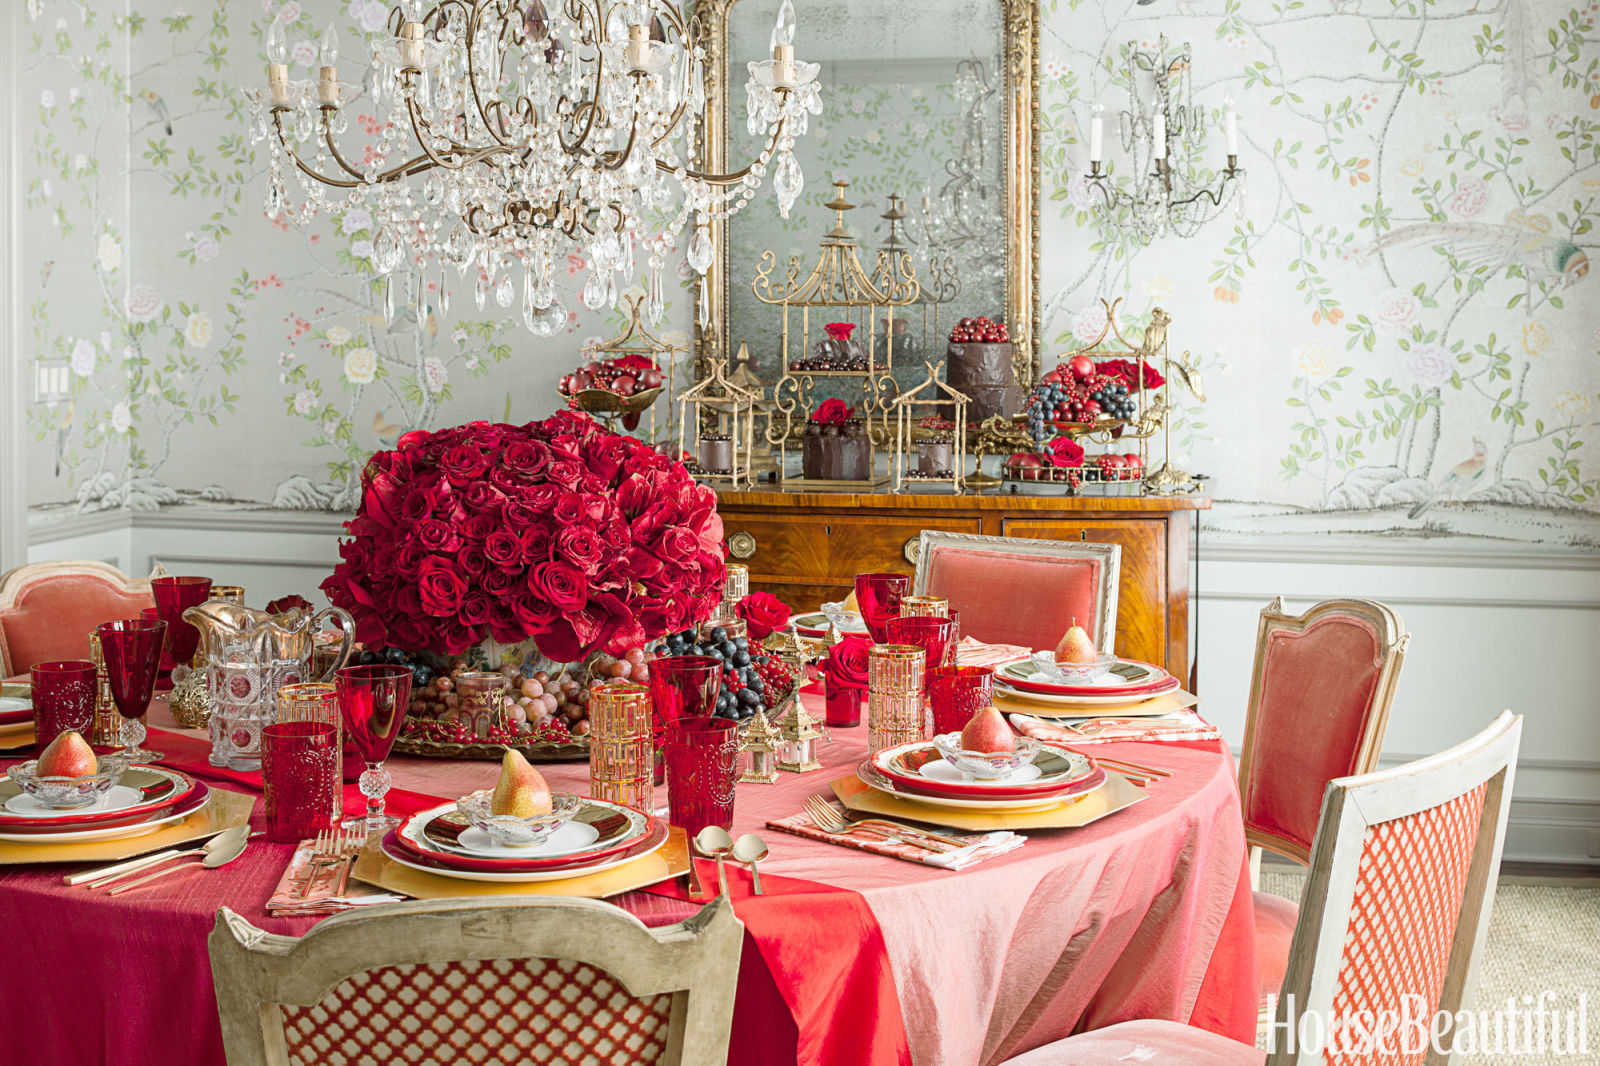 Top 3 Dining Room Table Ideas for a Luxurious Valentine's Day dining room table ideas Top 3 Dining Room Table Ideas for a Luxurious Valentine's Day 5 Dining Room Table Ideas for Valentines Day 2